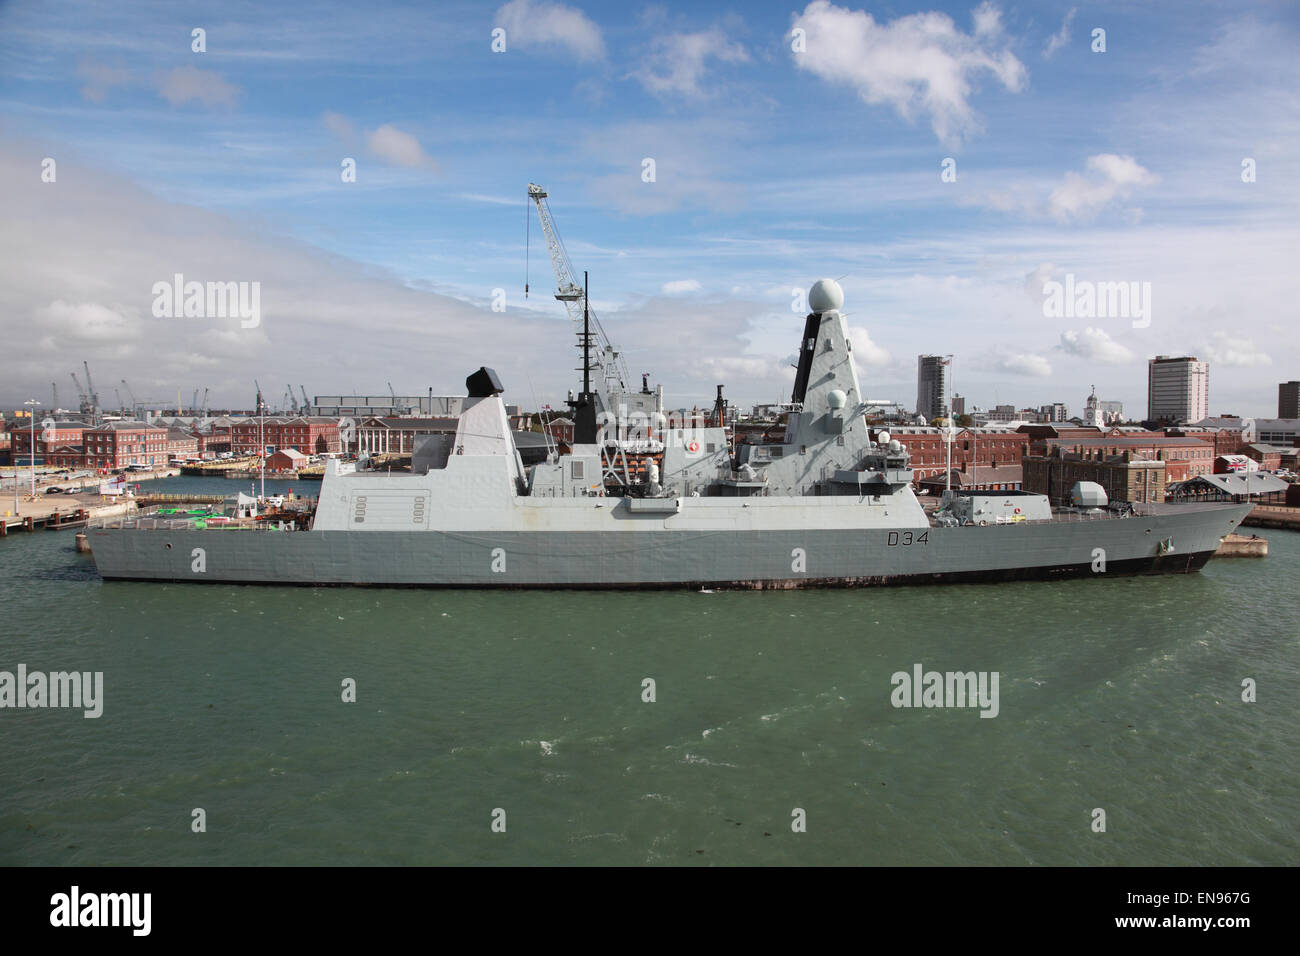 D34 HMS Diamond in Portsmouth Harbour, Hampshire, England, UK - Stock Image